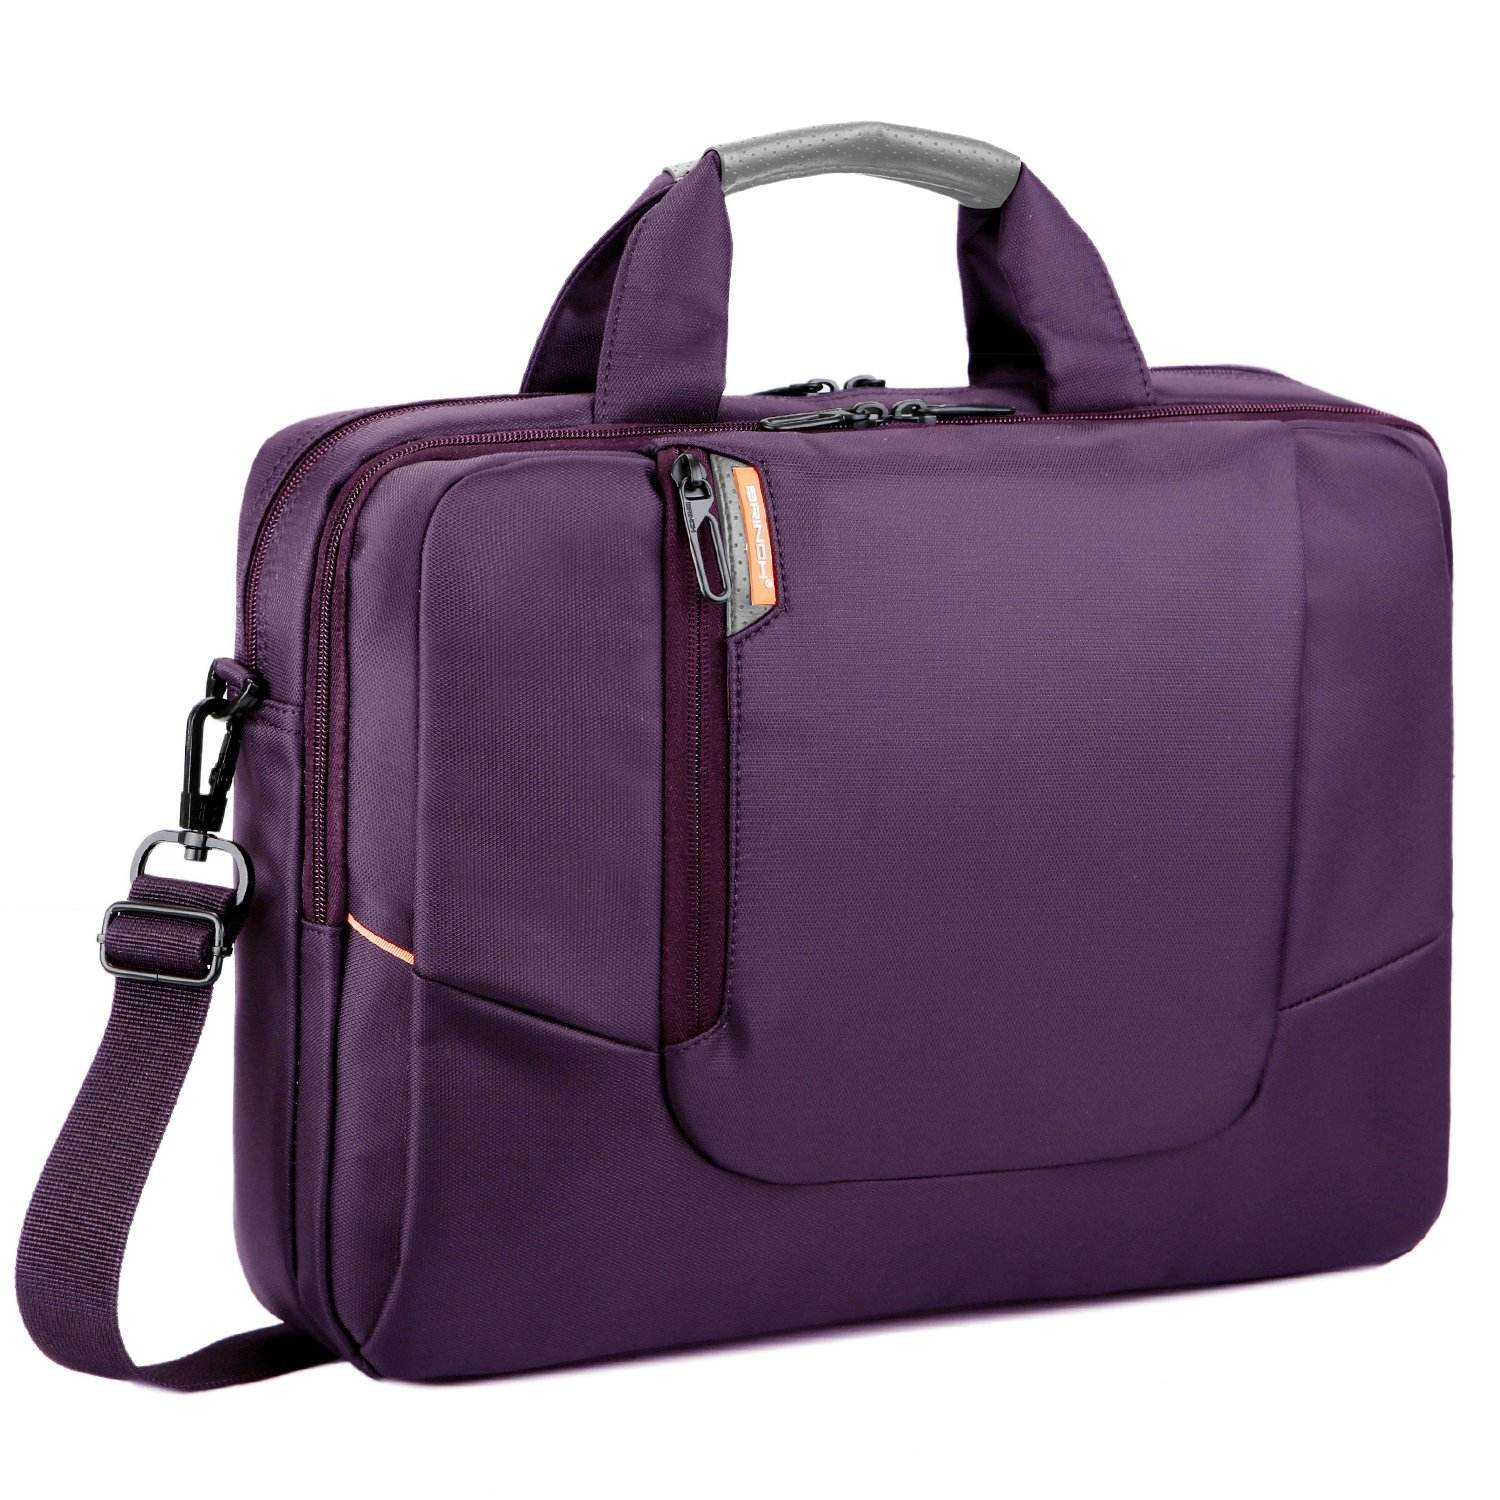 BRINCH(TM) 17.3 inch New Soft Nylon Waterproof Laptop Computer Case Cover Sleeve Shoulder Strap Bag with Side Pockets Handles and Detachable for Laptop/Notebook / Netbook/Chromebook,Colour Purple